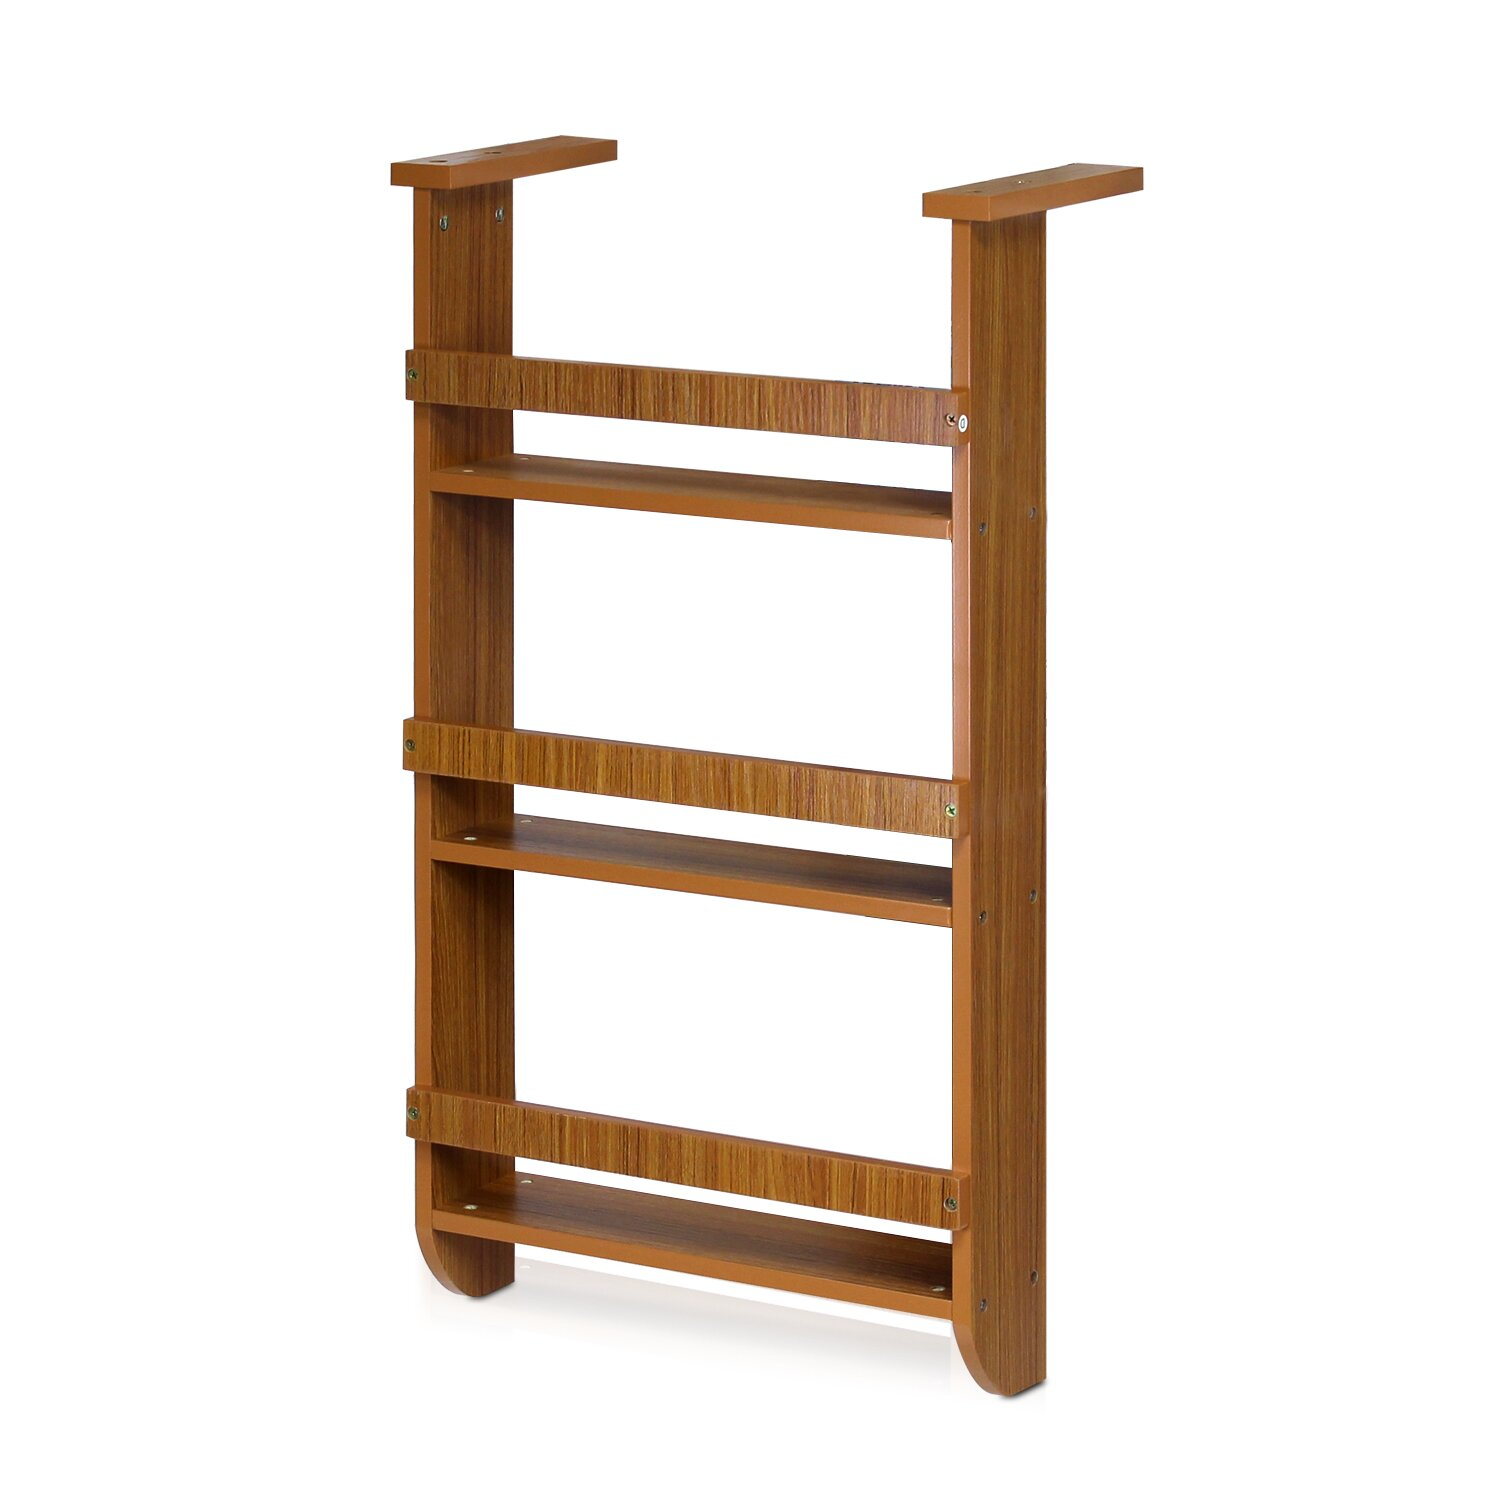 Furinno Wall Mount Spice Rack In Cherry Reviews Wayfair